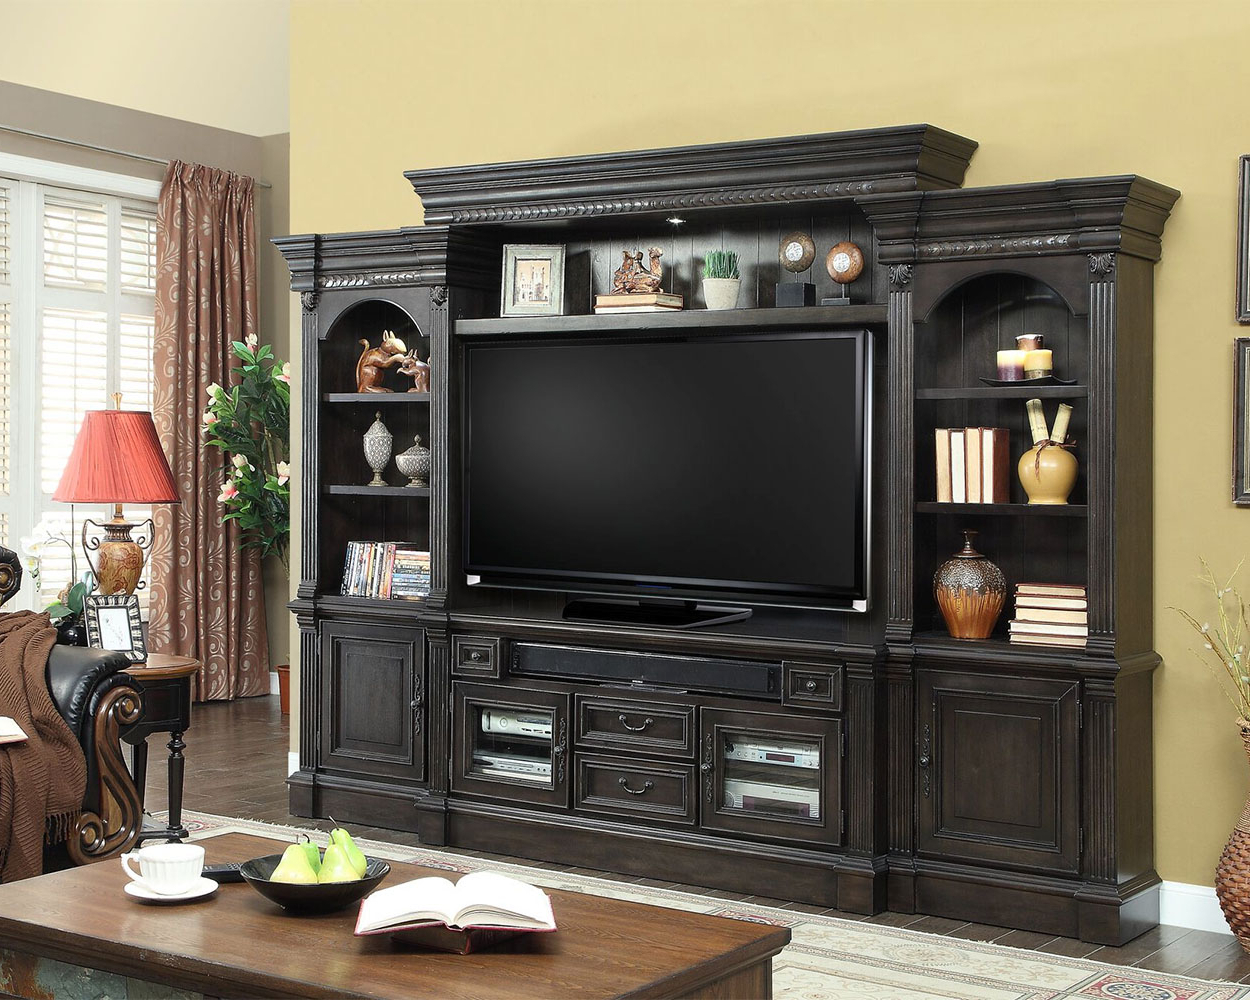 Tv Entertainment Wall Units With Regard To Latest Parker House Tv Entertainment Center Wall Unit Fairbanks (View 14 of 20)